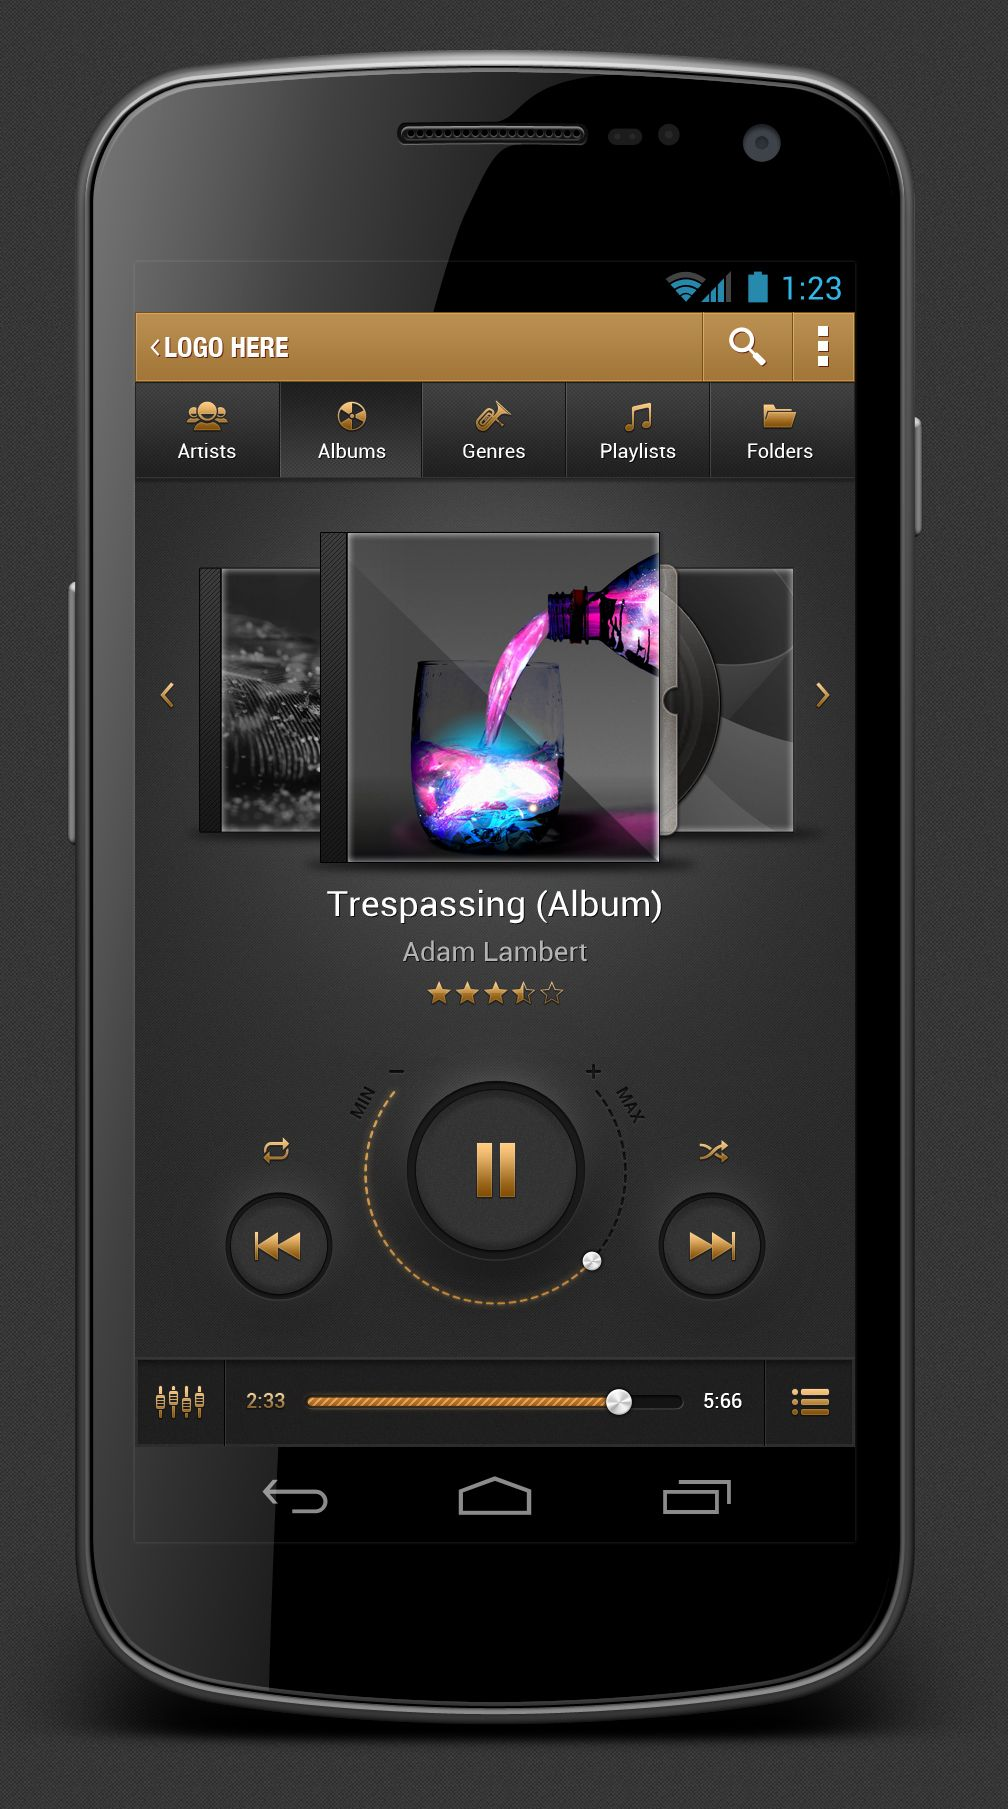 Android Music Player App by Revival Pixel, via forrst